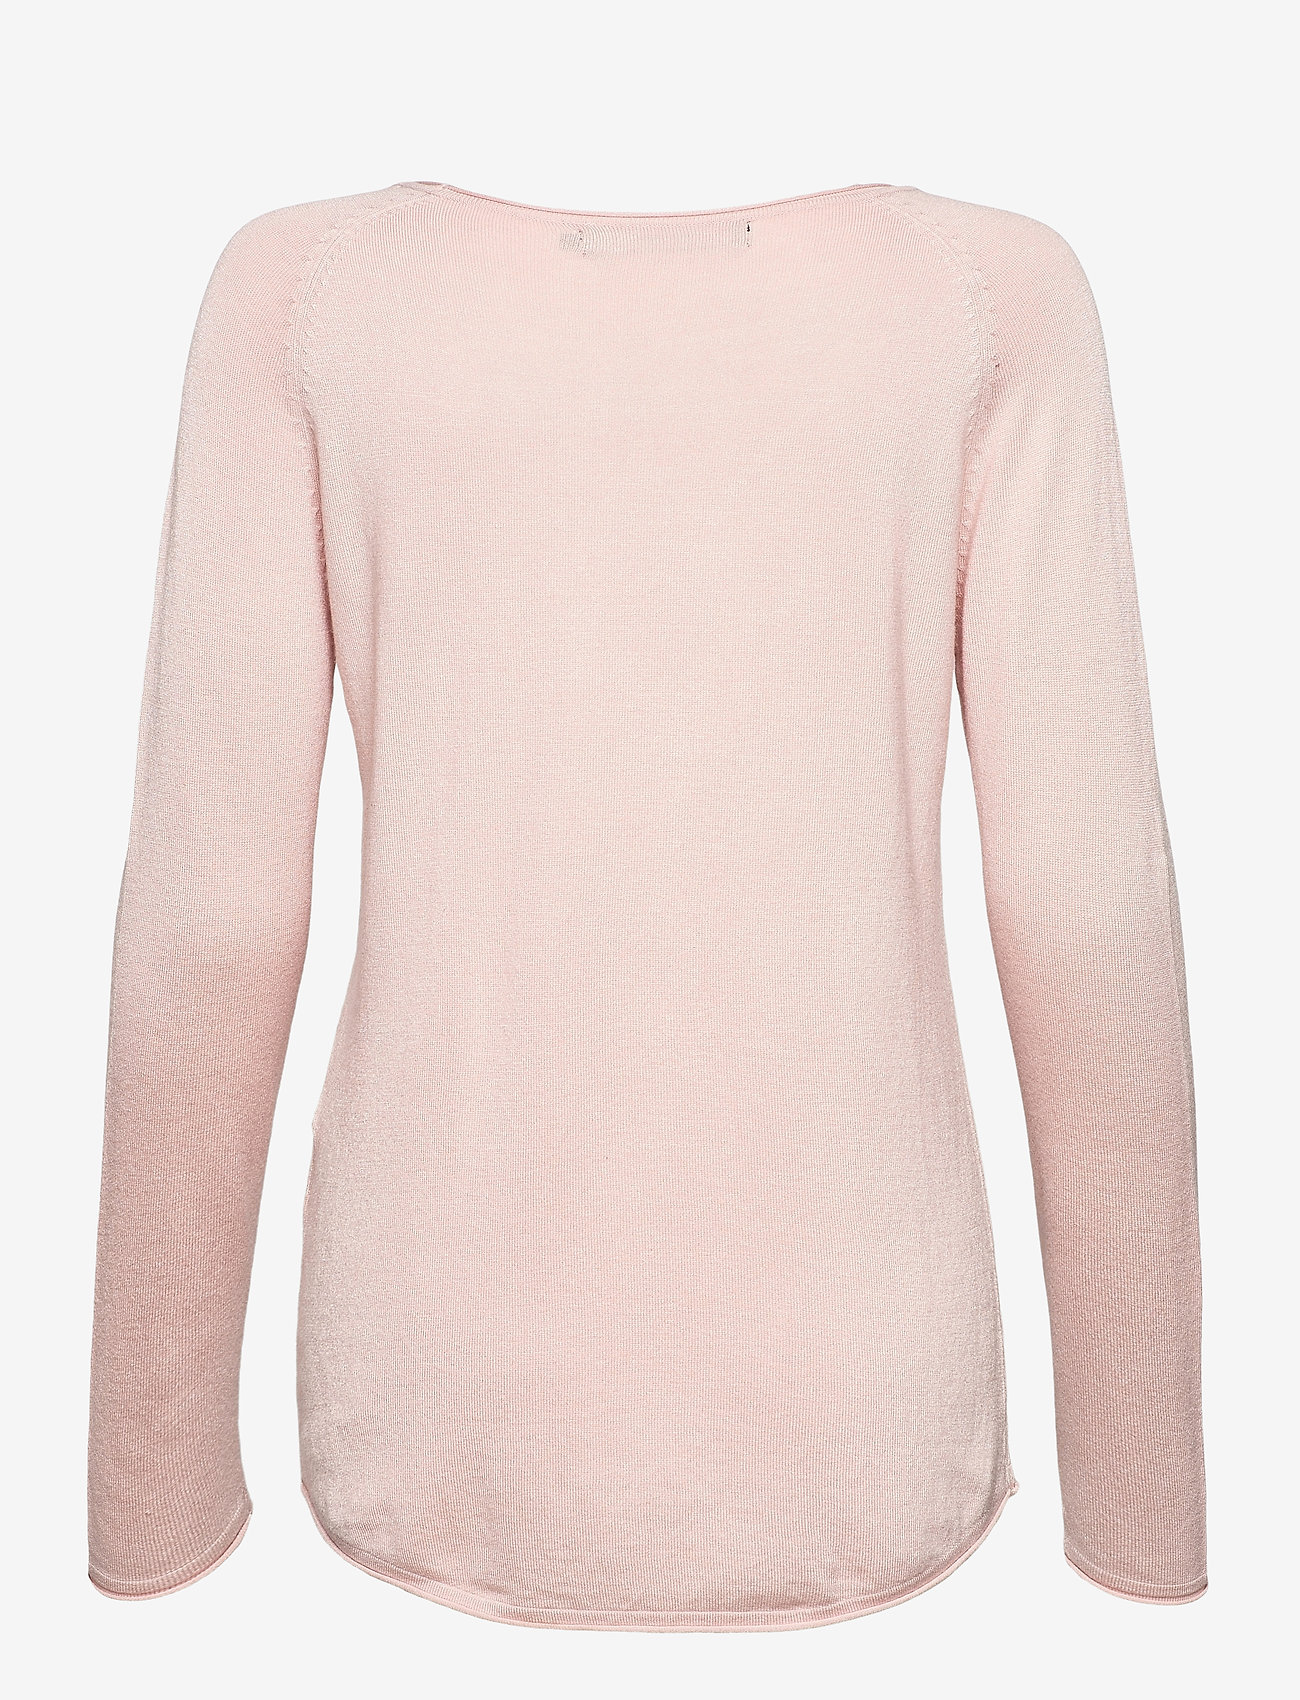 Vero Moda - VMNELLIE GLORY LS LONG BLOUSE - tröjor - sepia rose - 1